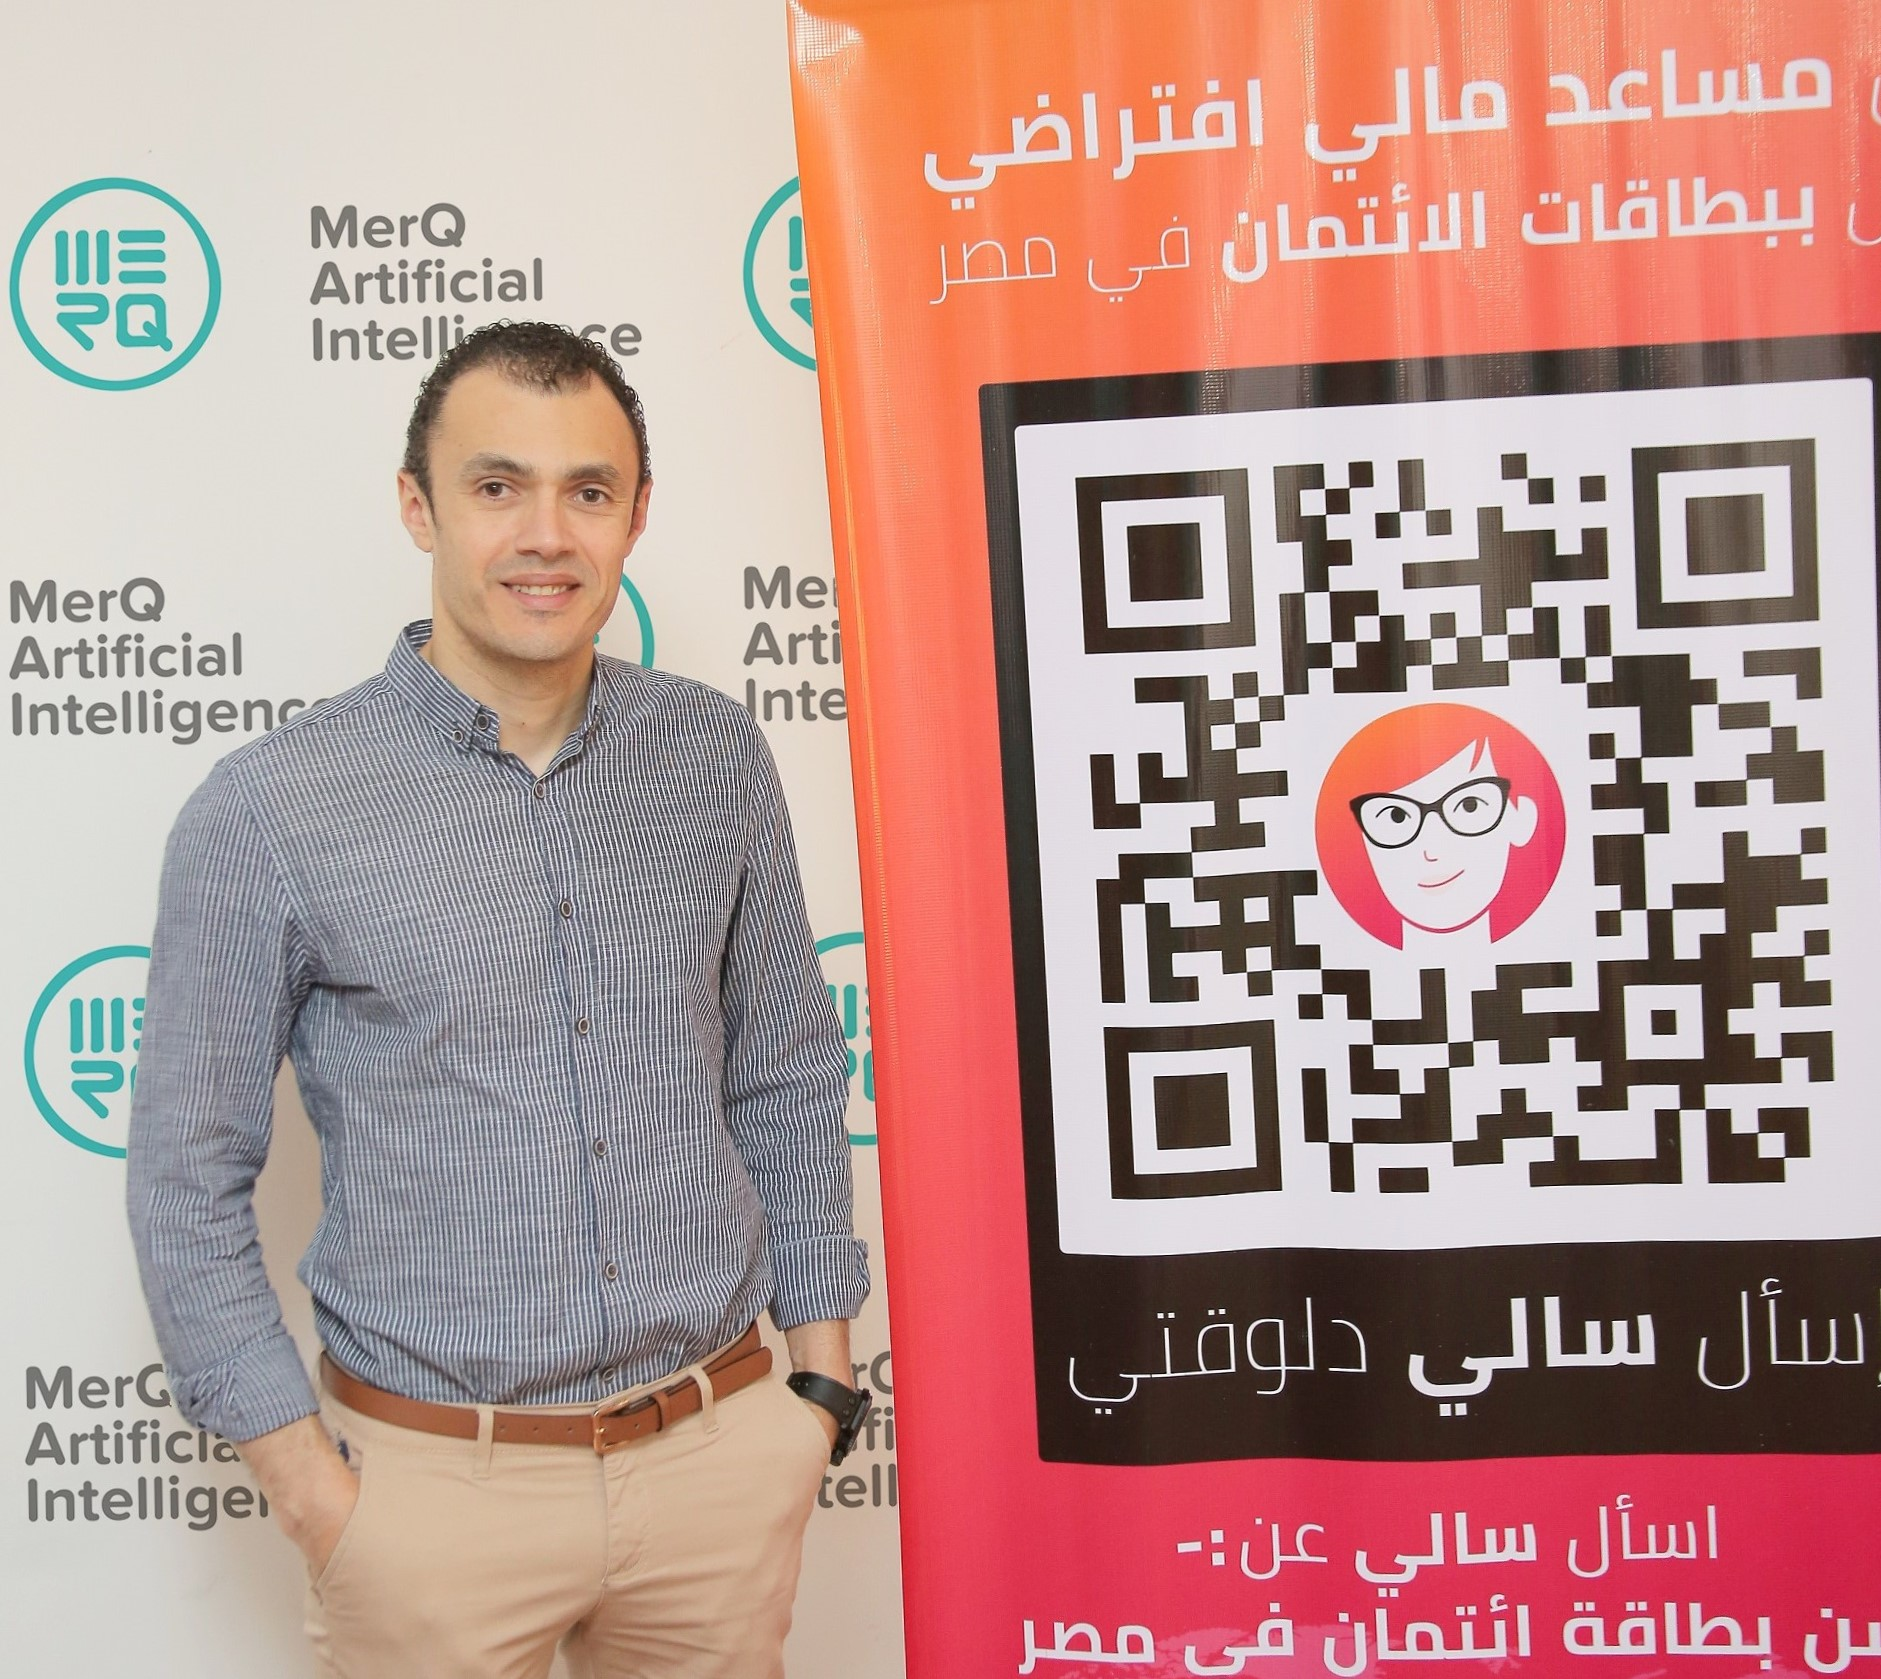 Egypt-based AI Firm MerQ Secures Its First Round Of Funding